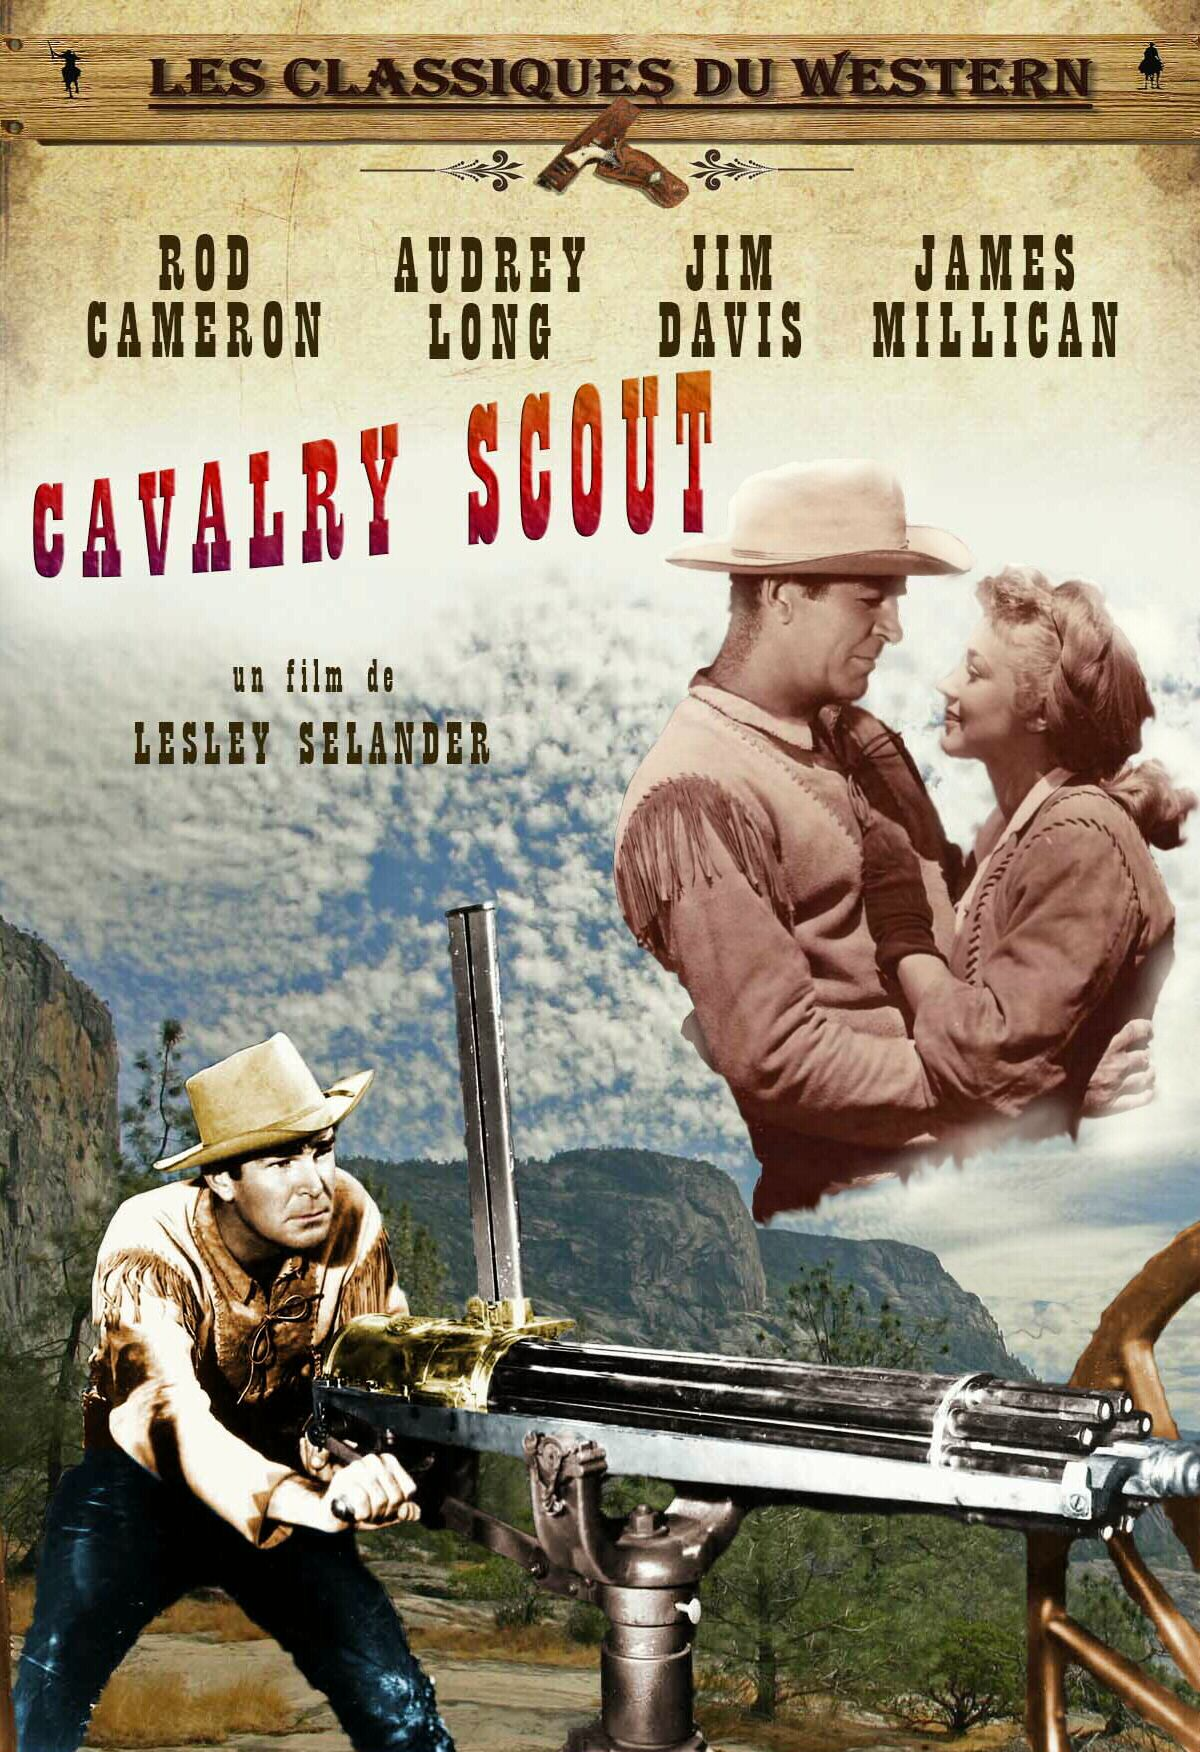 cavalry scout 1951 dvd front cover pinterest scouts. Black Bedroom Furniture Sets. Home Design Ideas